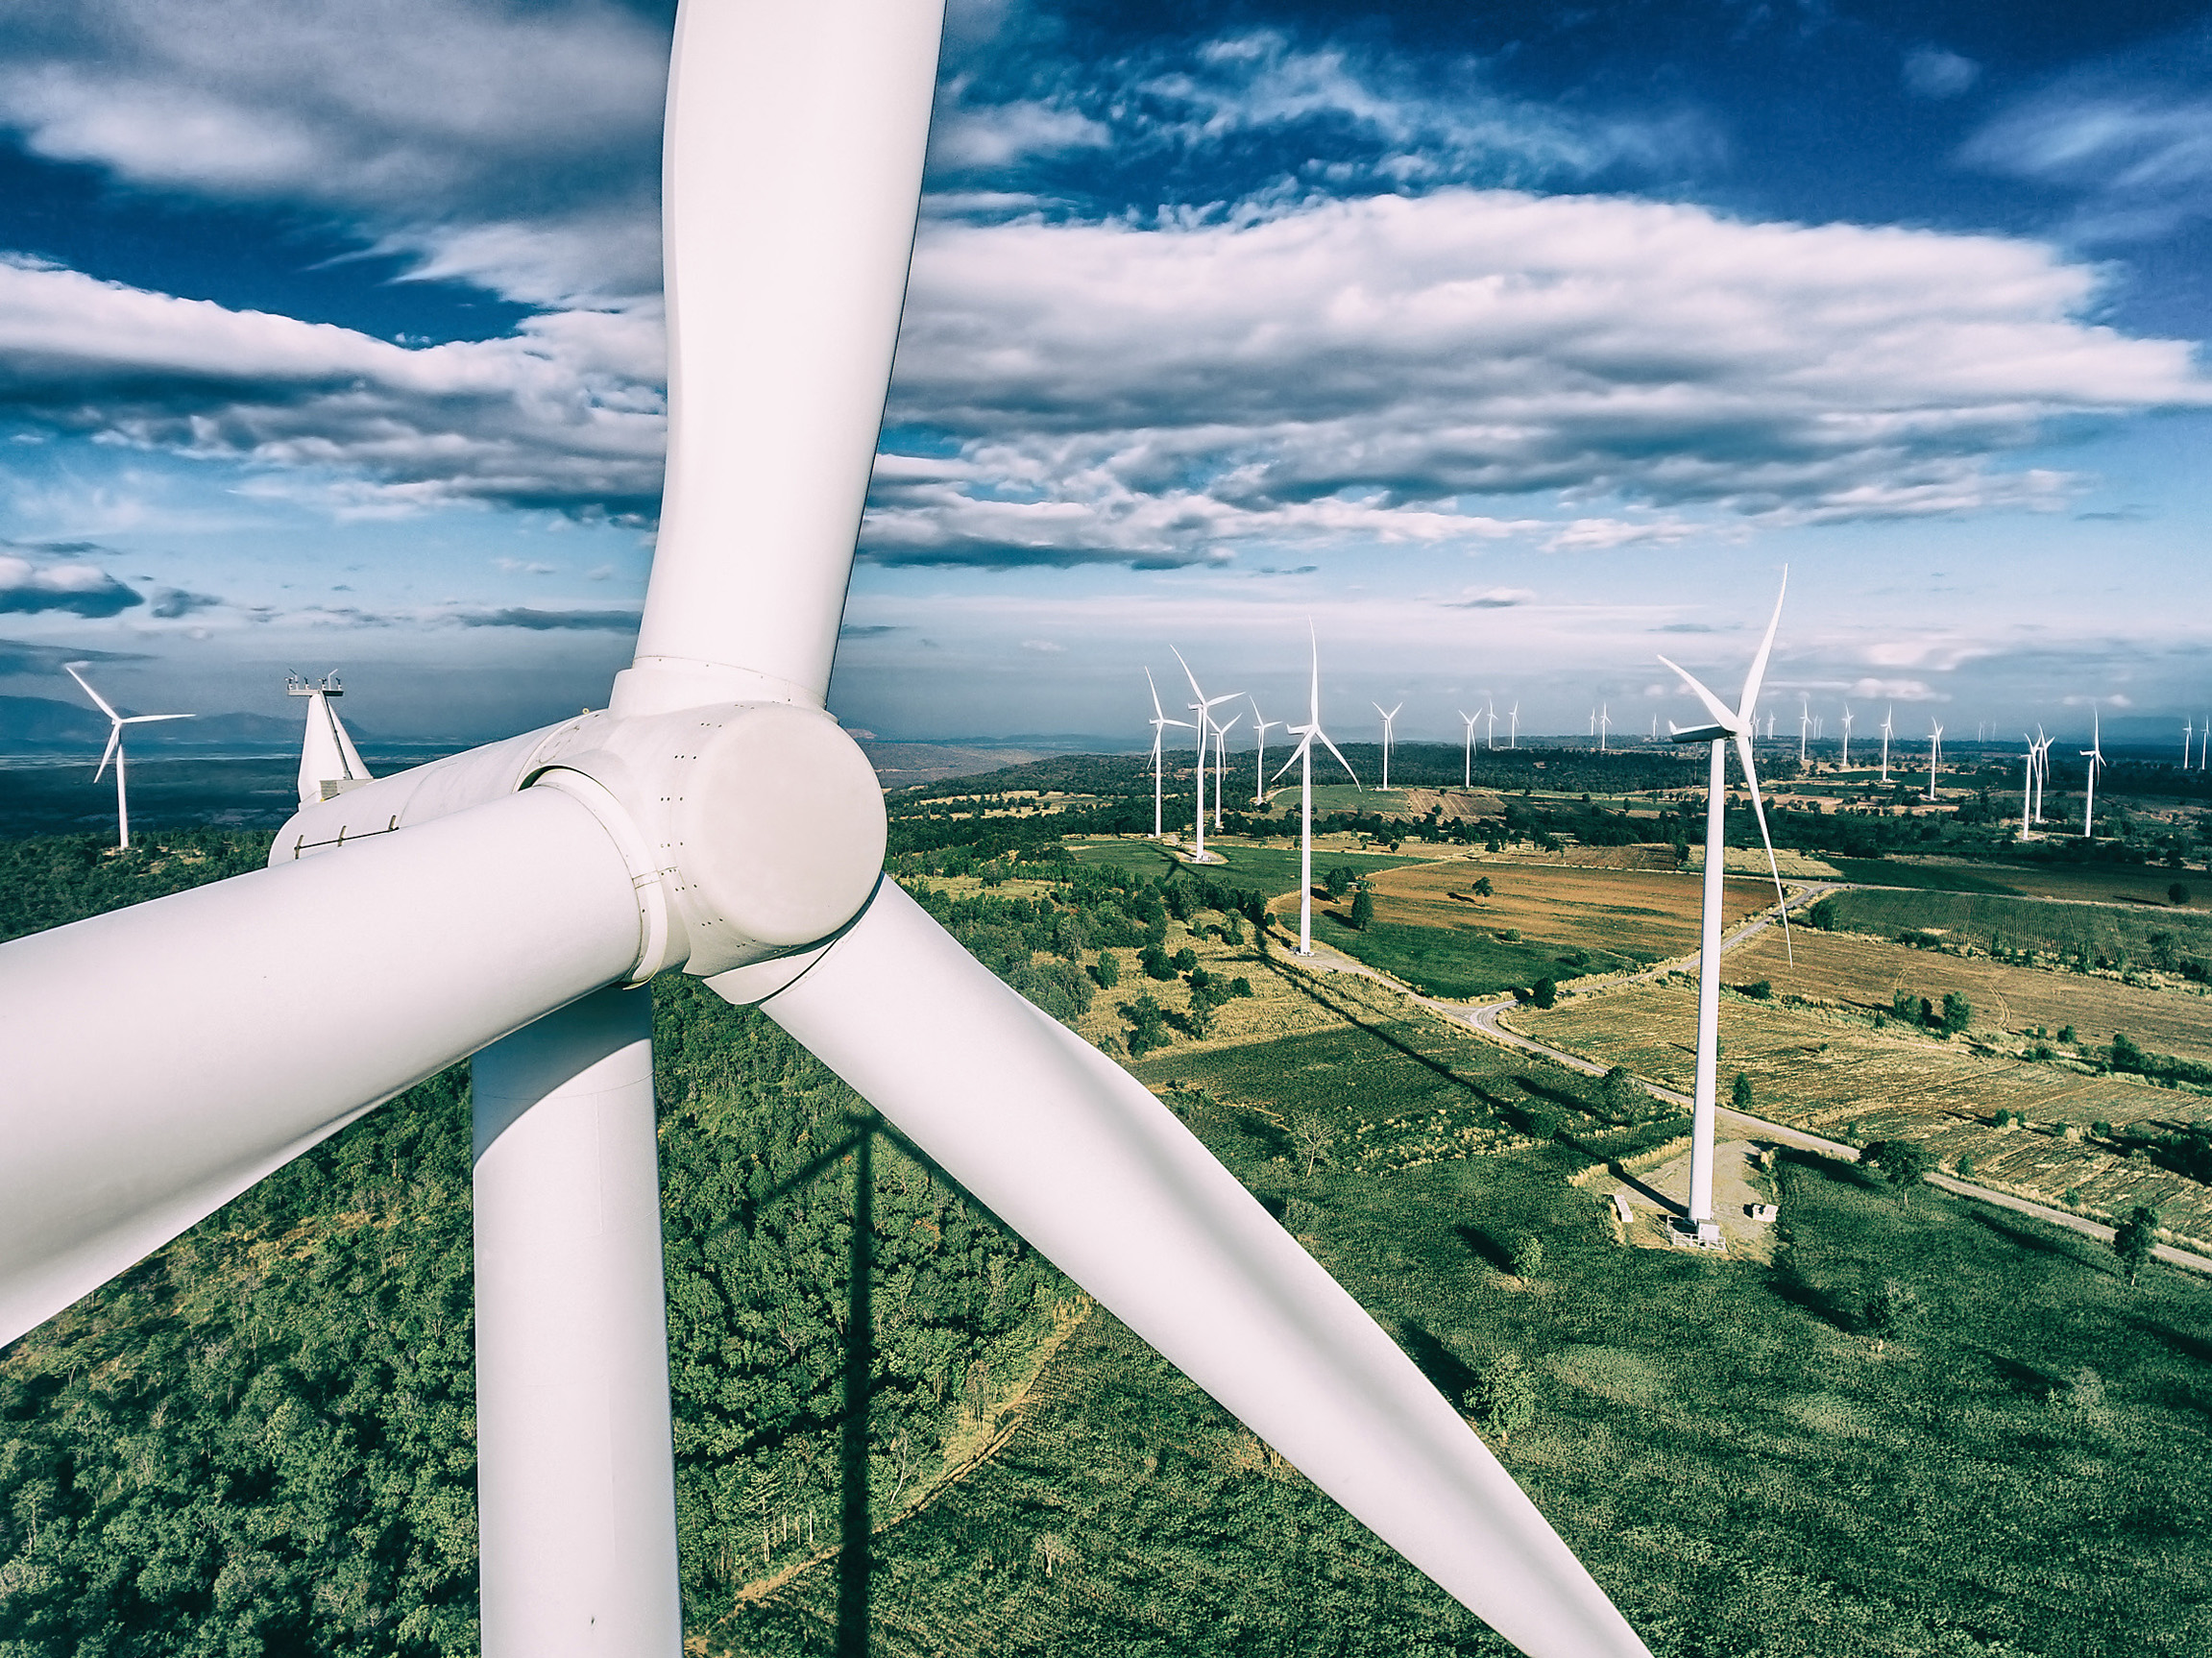 Together with global industry partners, Covestro has developed a solution for an efficient production of rotor blades for wind power plants (Source: Covestro)